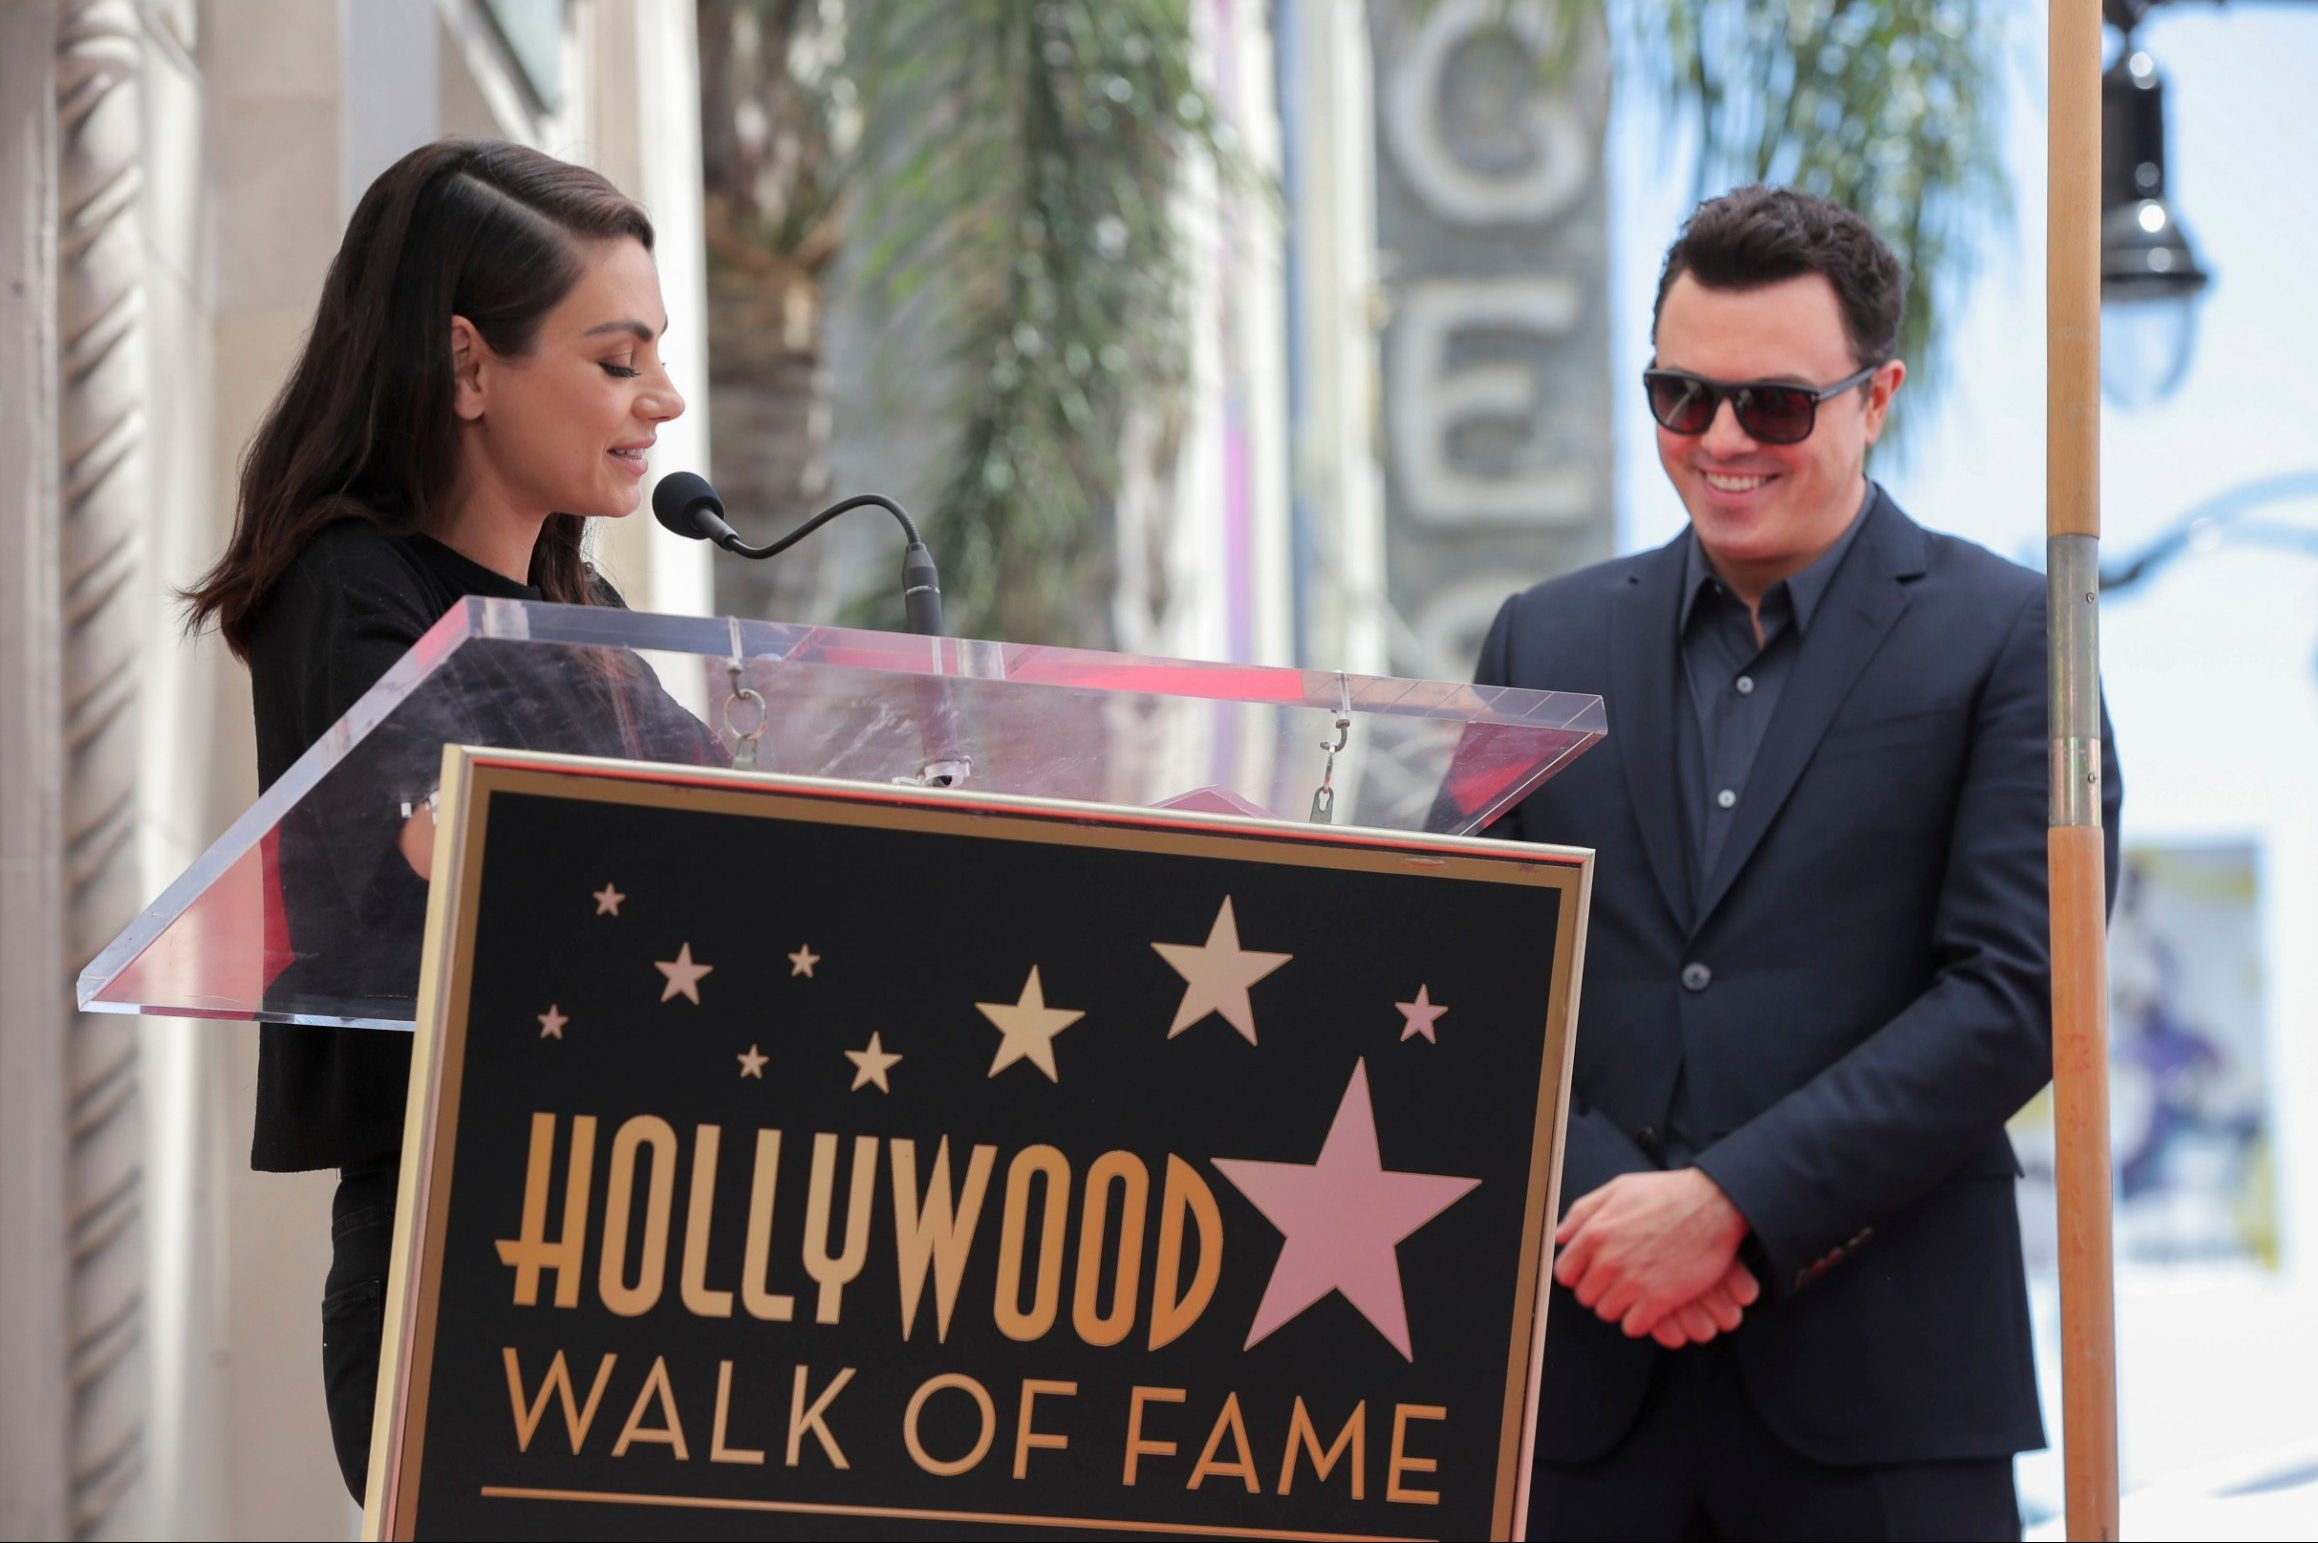 Mandatory Credit: Photo by Chelsea Lauren/Variety/REX (10217047cj) Mila Kunis and Seth MacFarlane Seth MacFarlane honored with a Star on the Hollywood Walk of Fame, Los Angeles, USA - 23 Apr 2019